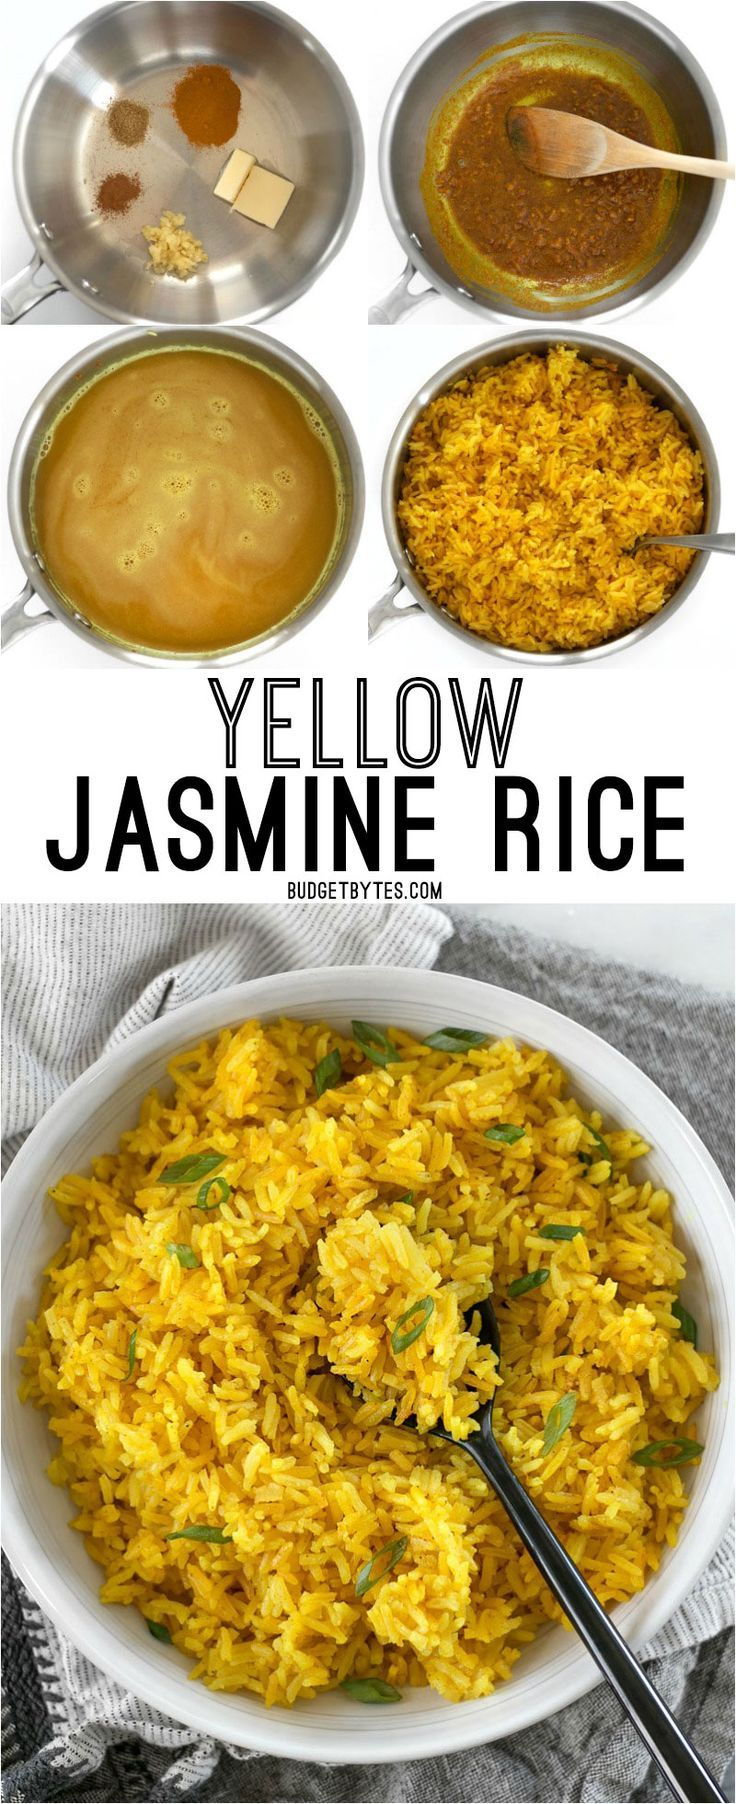 This savory Yellow Jasmine Rice combines warm and fragrant Indian spices and chicken broth to make the most flavorful rice you've ever tasted! @budgetbytes